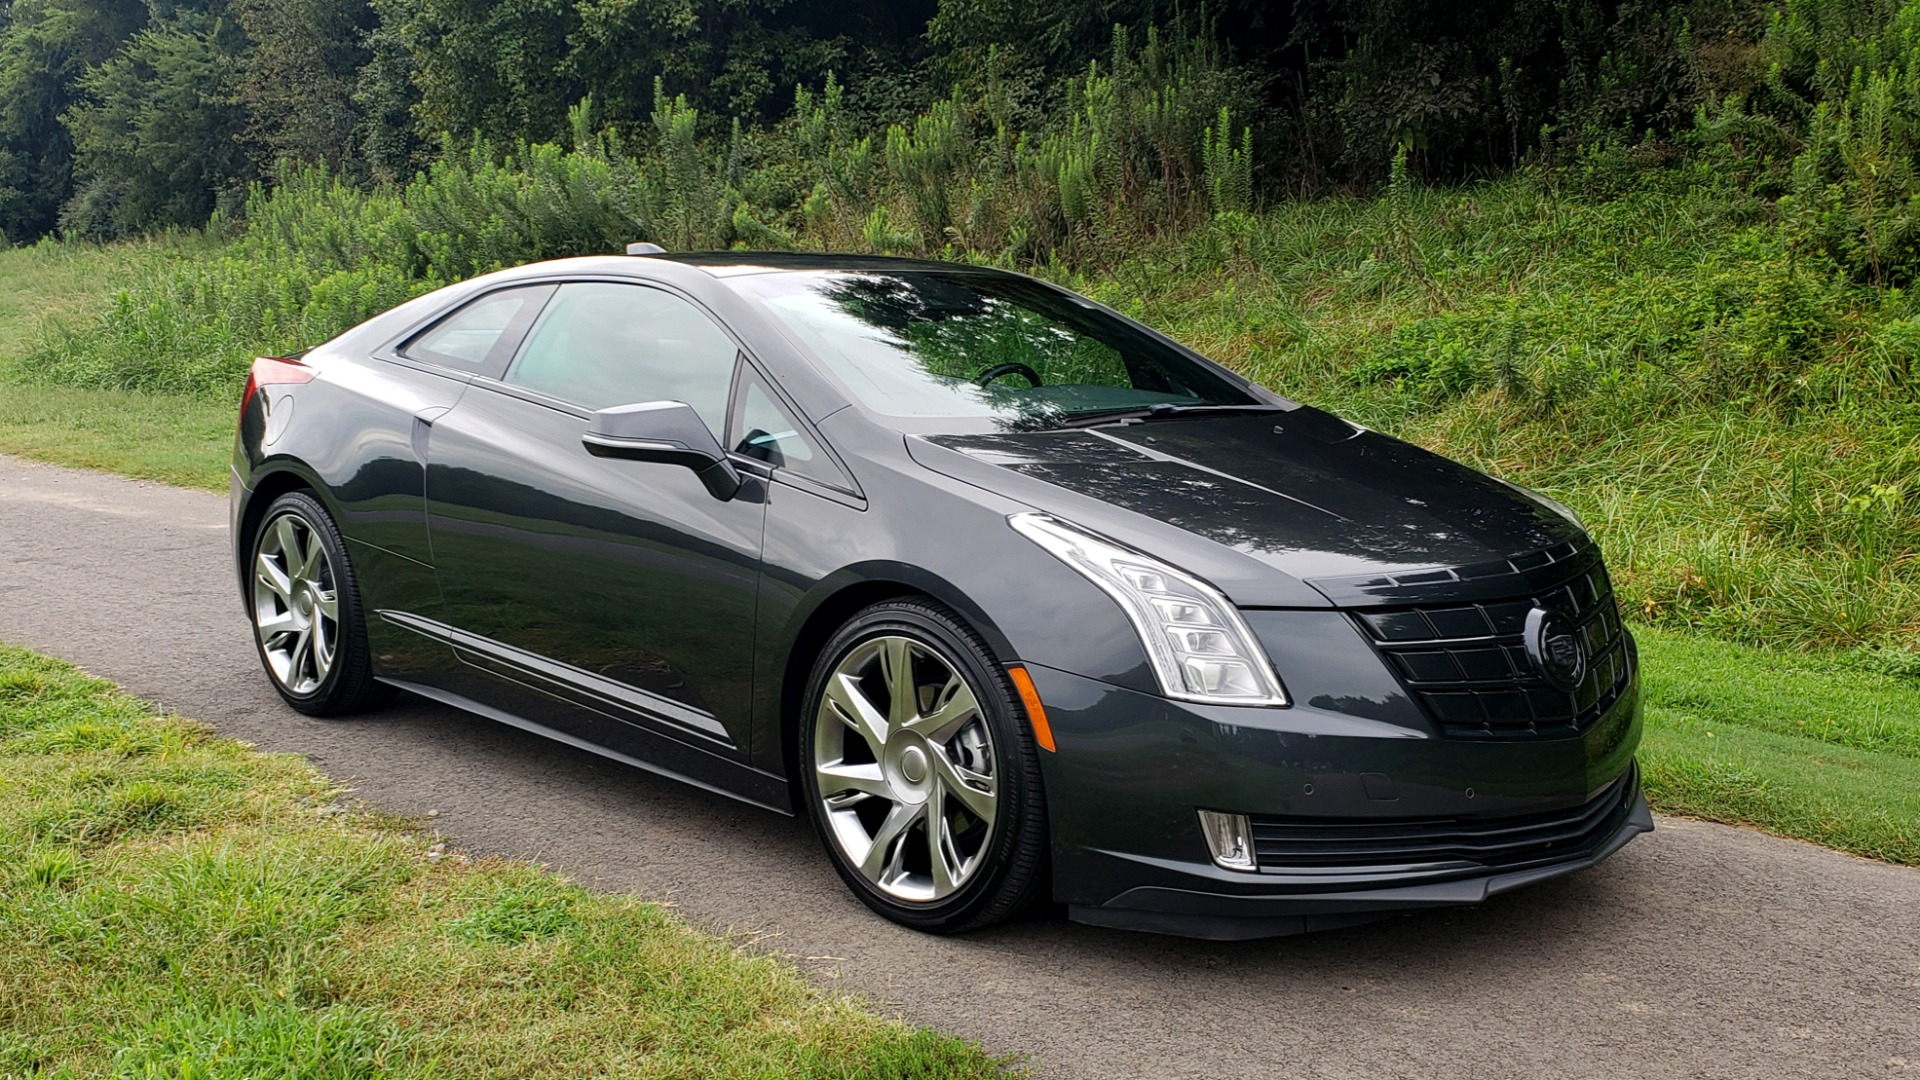 Used 2014 Cadillac ELR 2DR COUPE / HYBRID / NAV / BOSE / HEATED SEATS / REARVIEW for sale $34,000 at Formula Imports in Charlotte NC 28227 6